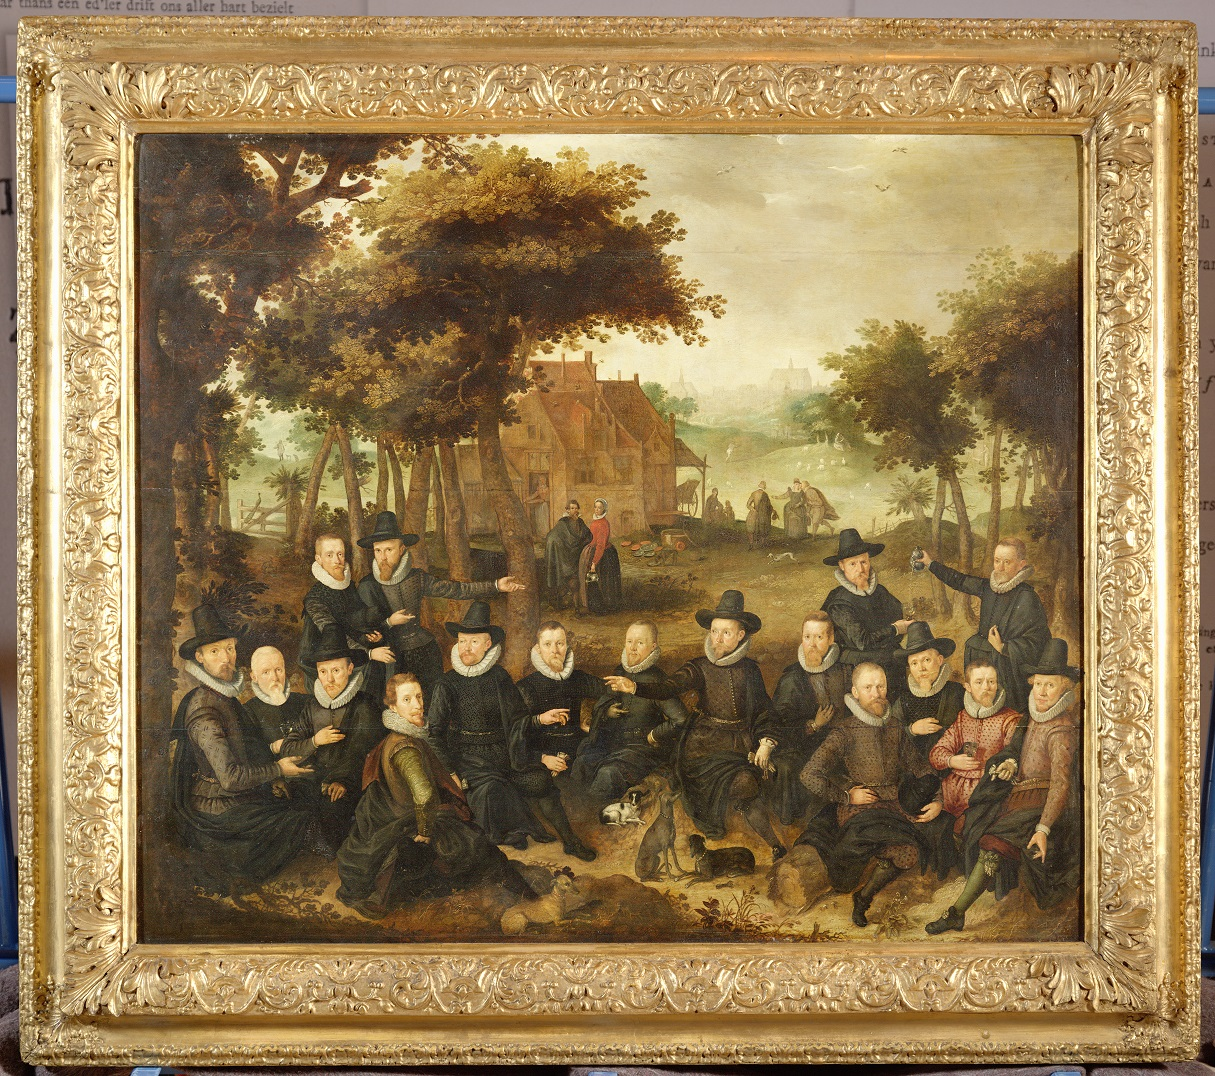 Fig. 7. Claes Jacobsz van der Heck (1575-1652), <em>Officers of the Old Civic Guard in a Landscape</em>, 1613<br>Restored with support from Duinvermaak / 't Vrouwtje van Duin, Bergen. (This photograph shows the painting before restoration.)<br>Stedelijk Museum Alkmaar